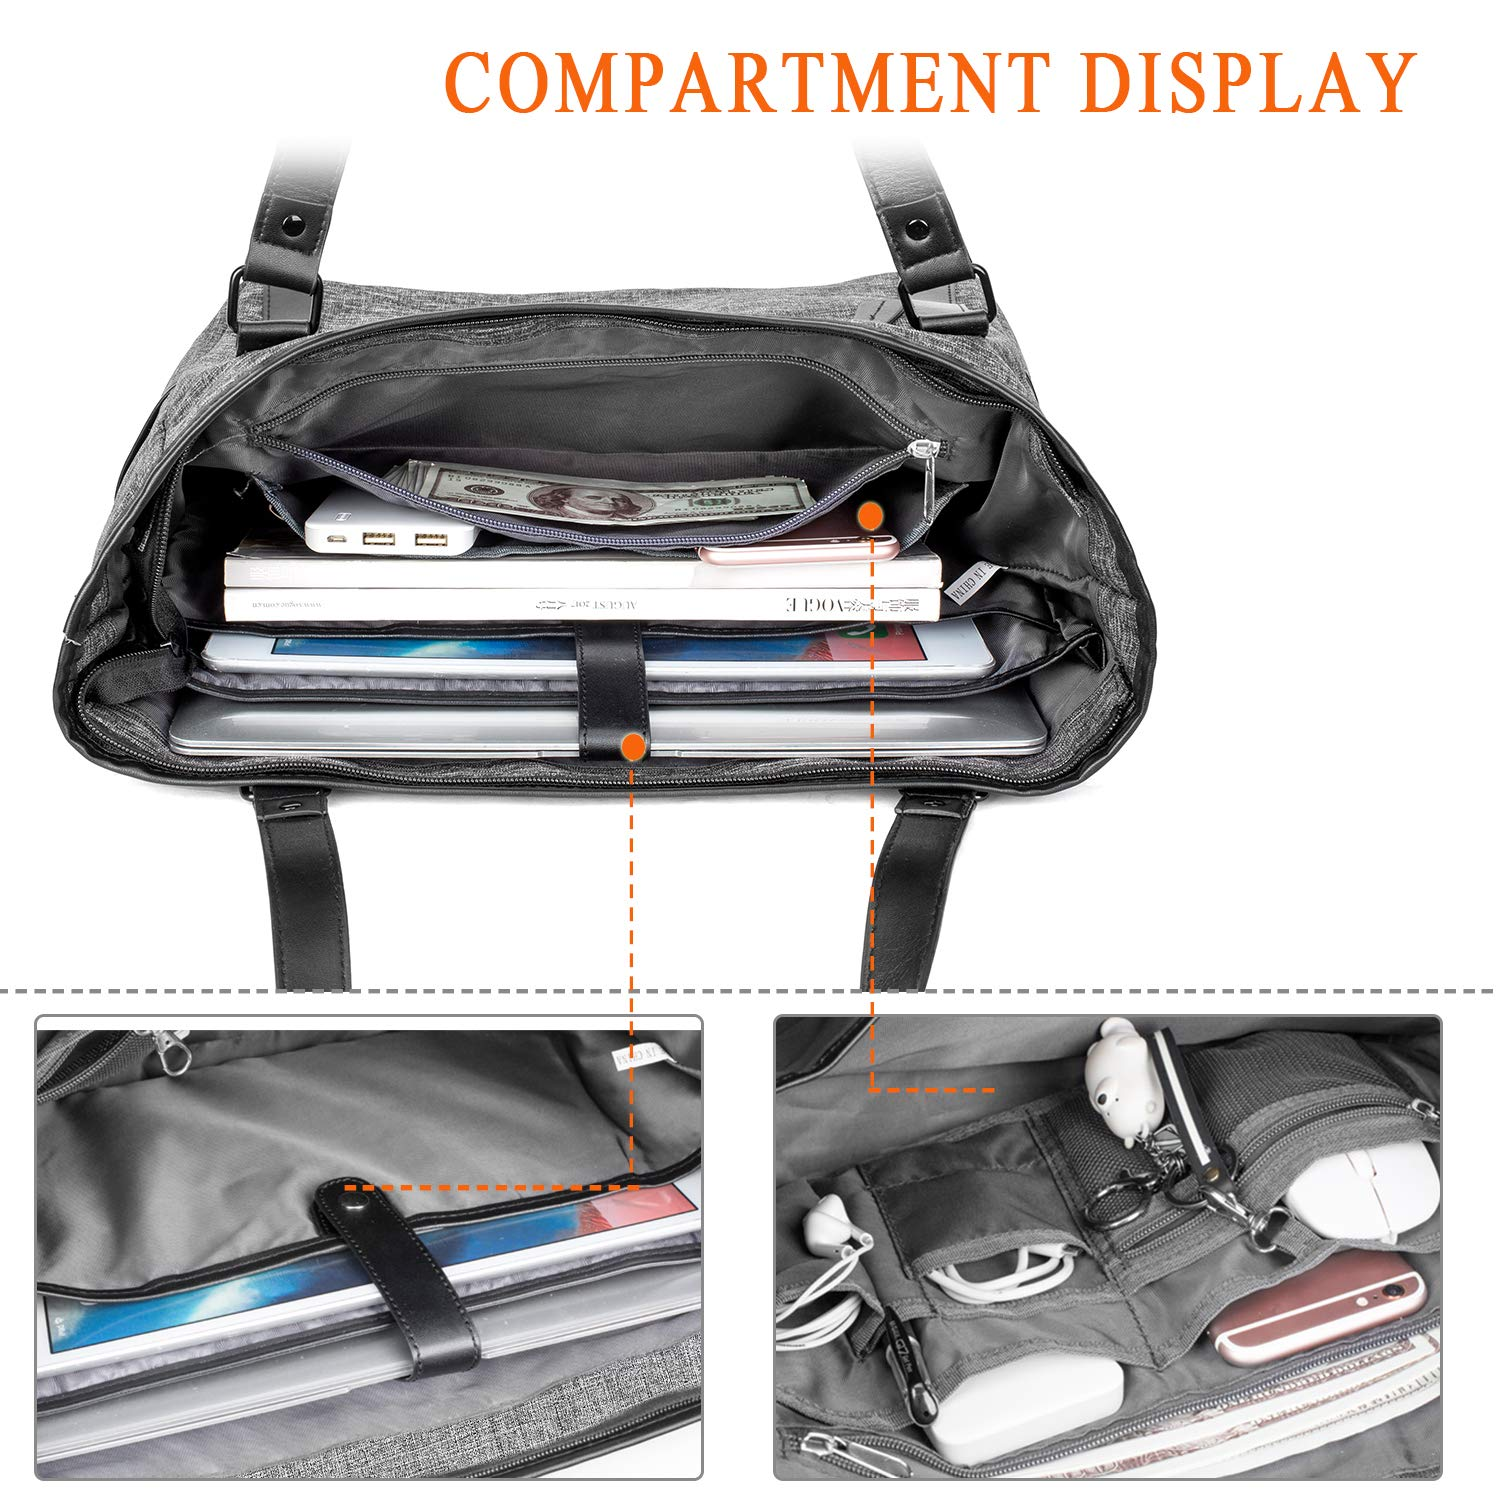 15.6 Inch Laptop Tote Bag Lightweight Stylish Satchel for Women Durable Nylon Travel Bag Casual Shopping Handbag Large Capacity Business Briefcase Multi-Function Zipper Shoulder Bag,Black Suppets